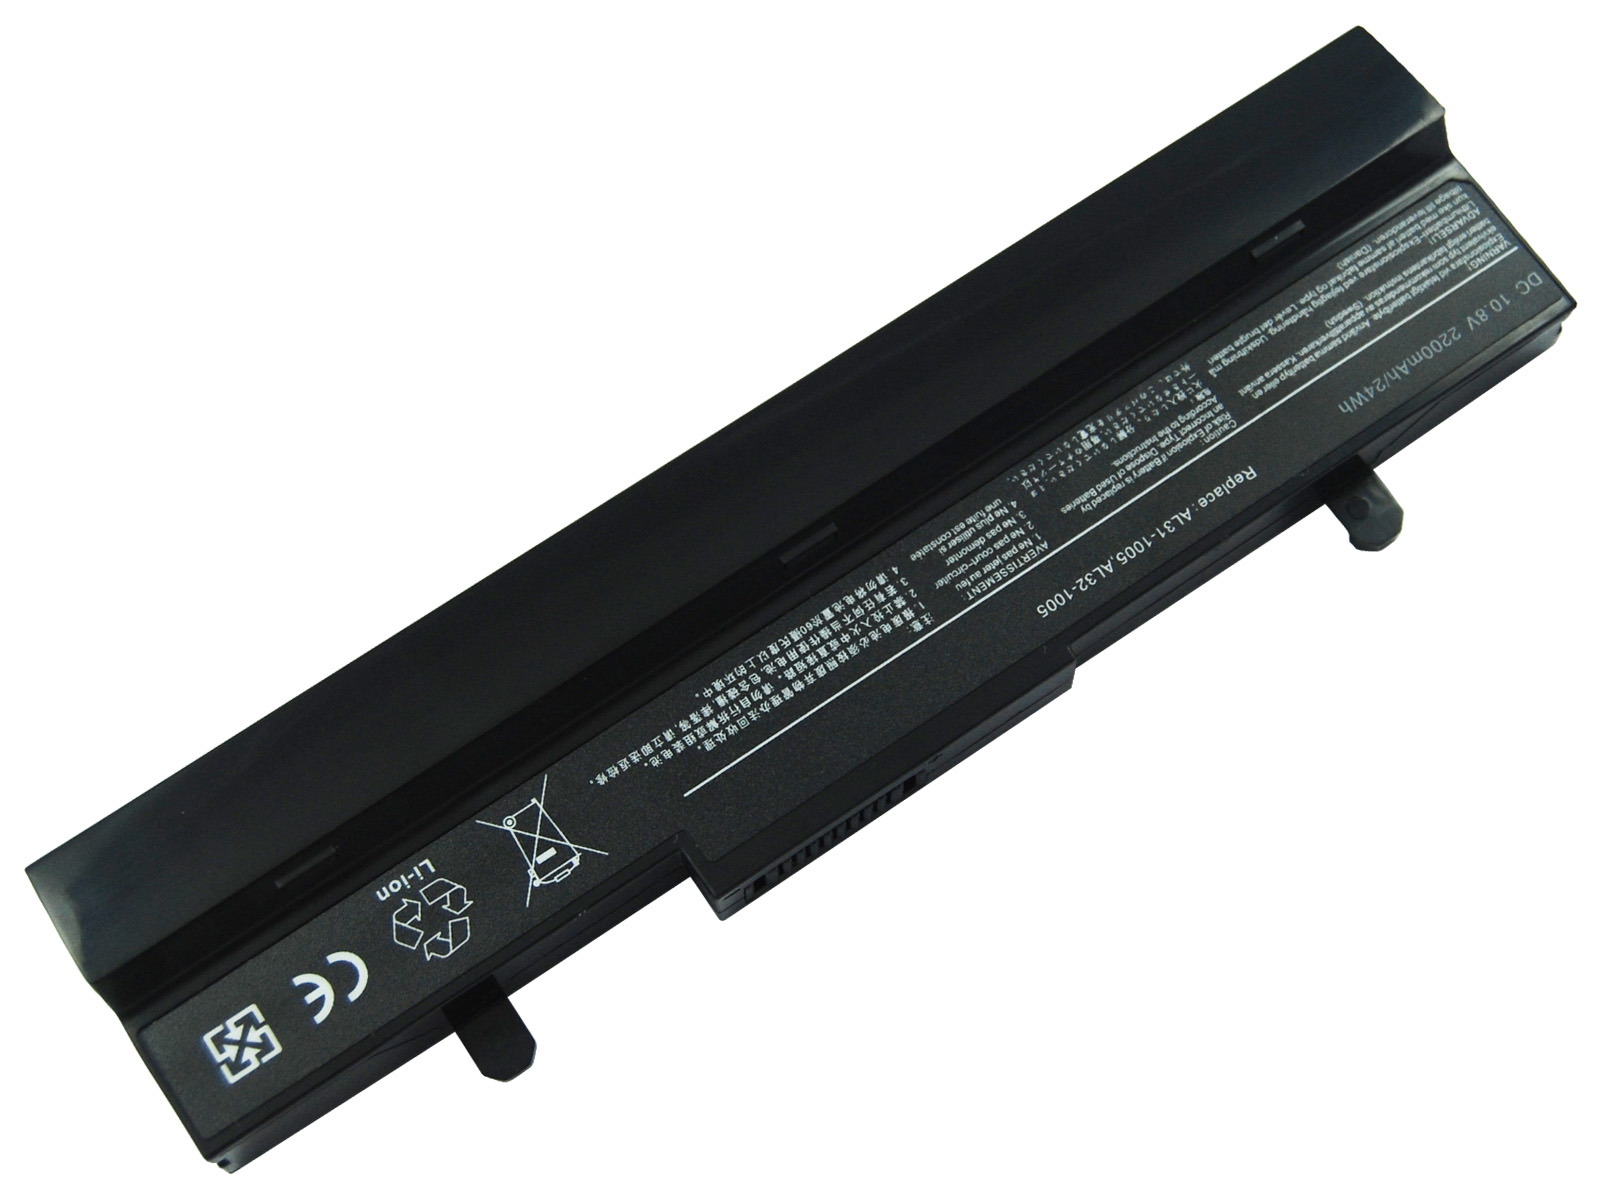 Bateria Portatil ASUS Eee PC 1001HA AL31-1005